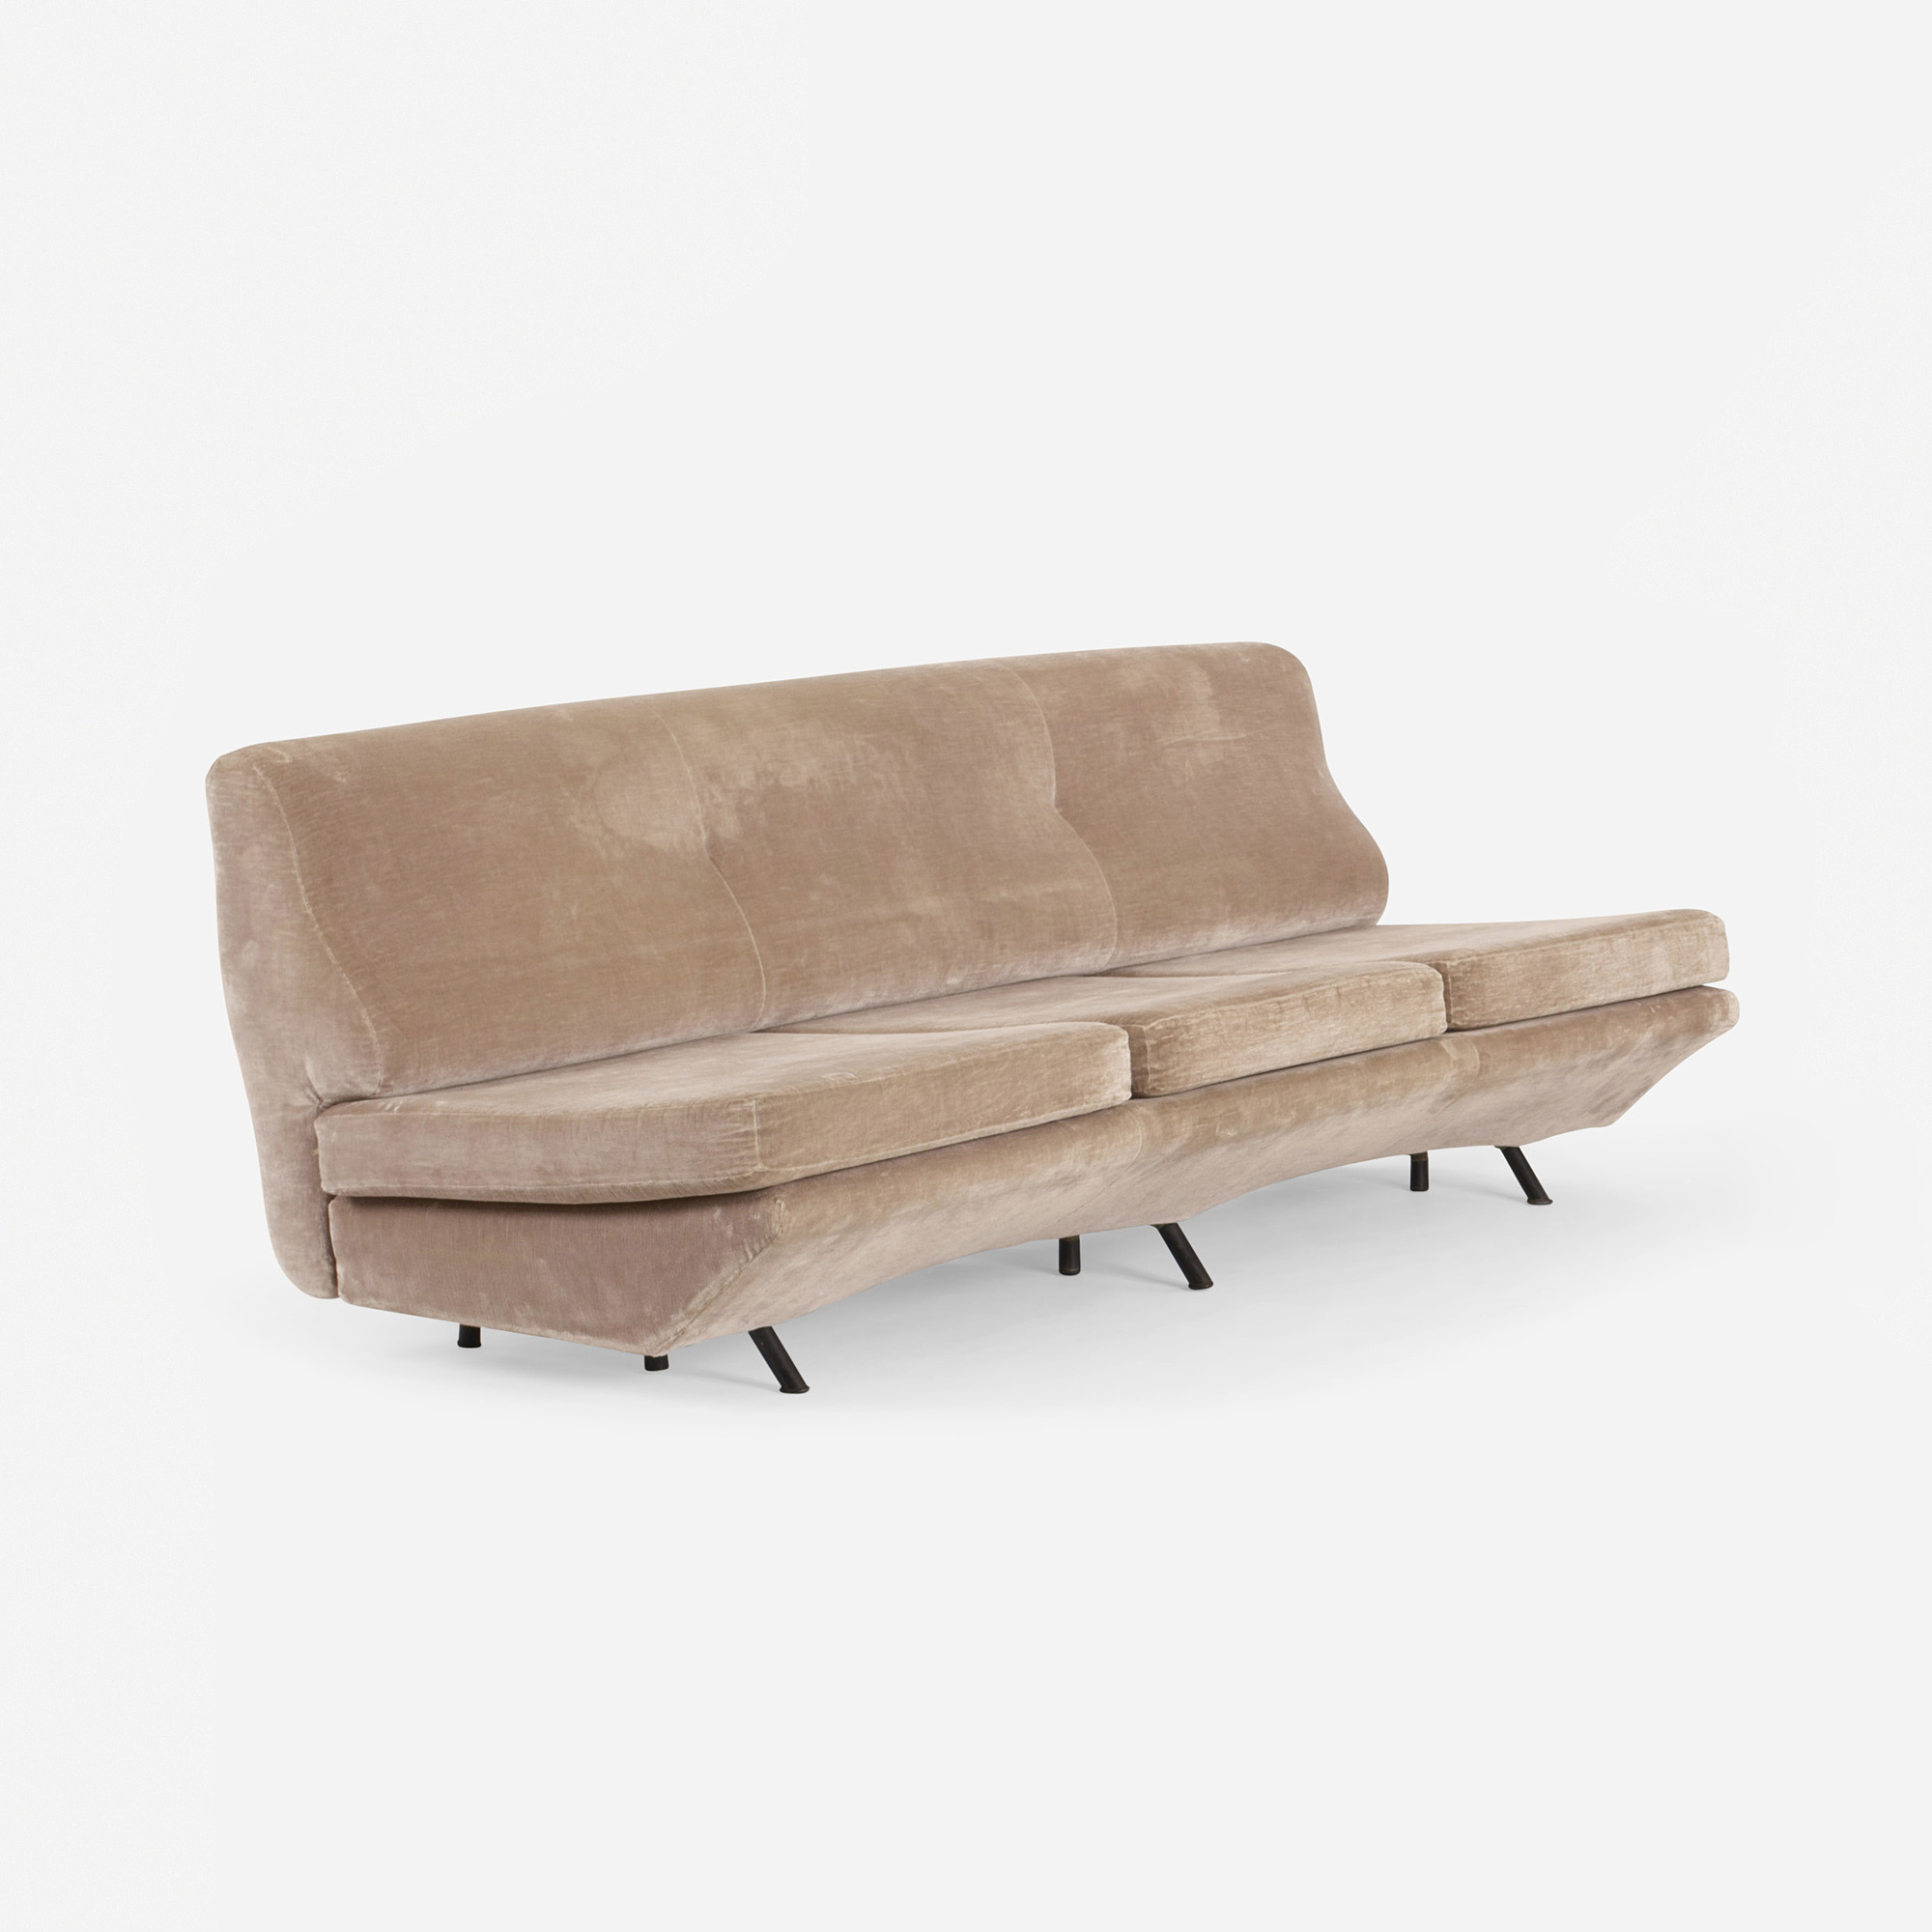 744 Marco Zo Sofa 1 Of 2